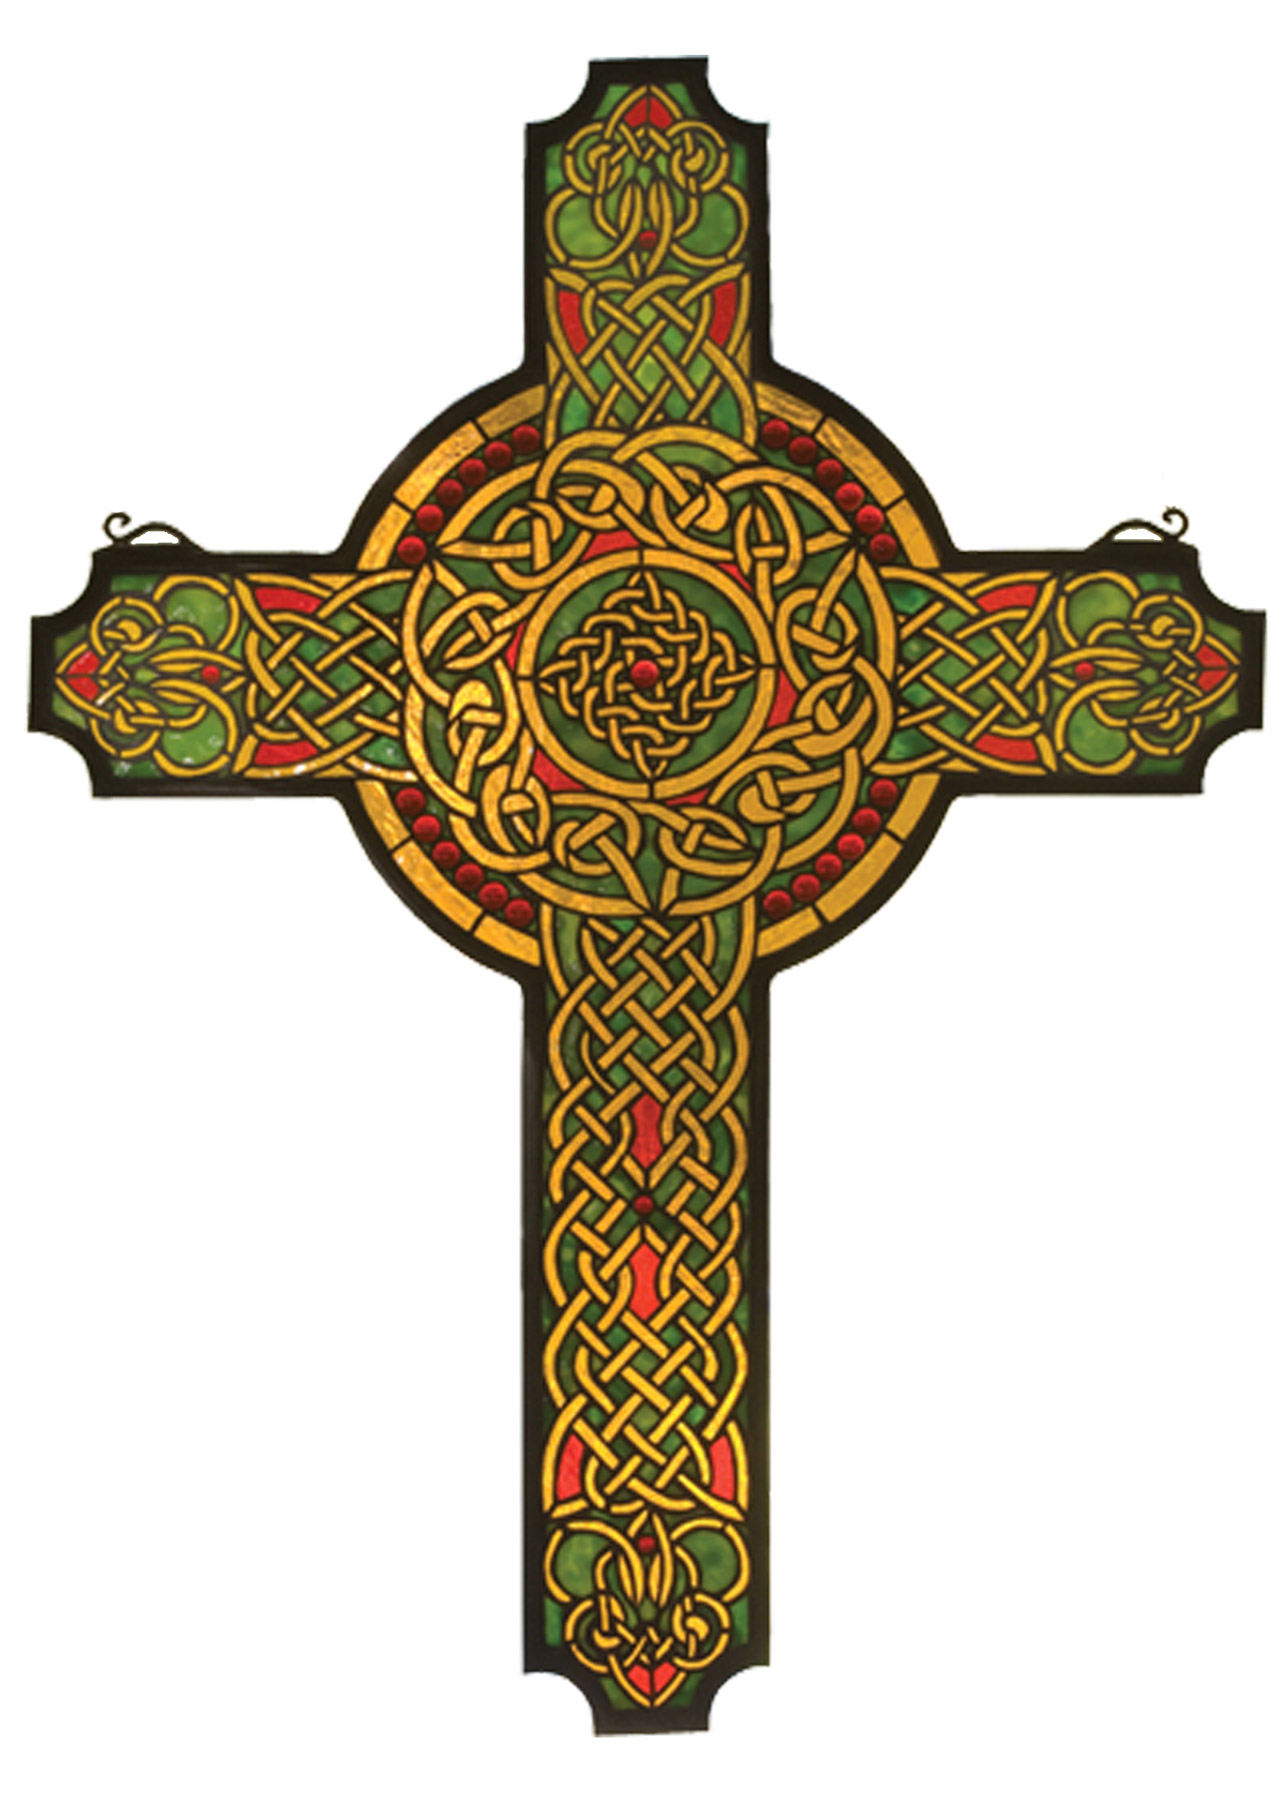 Meyda 79986 Tiffany Jeweled Celtic Cross Stained Glass Window